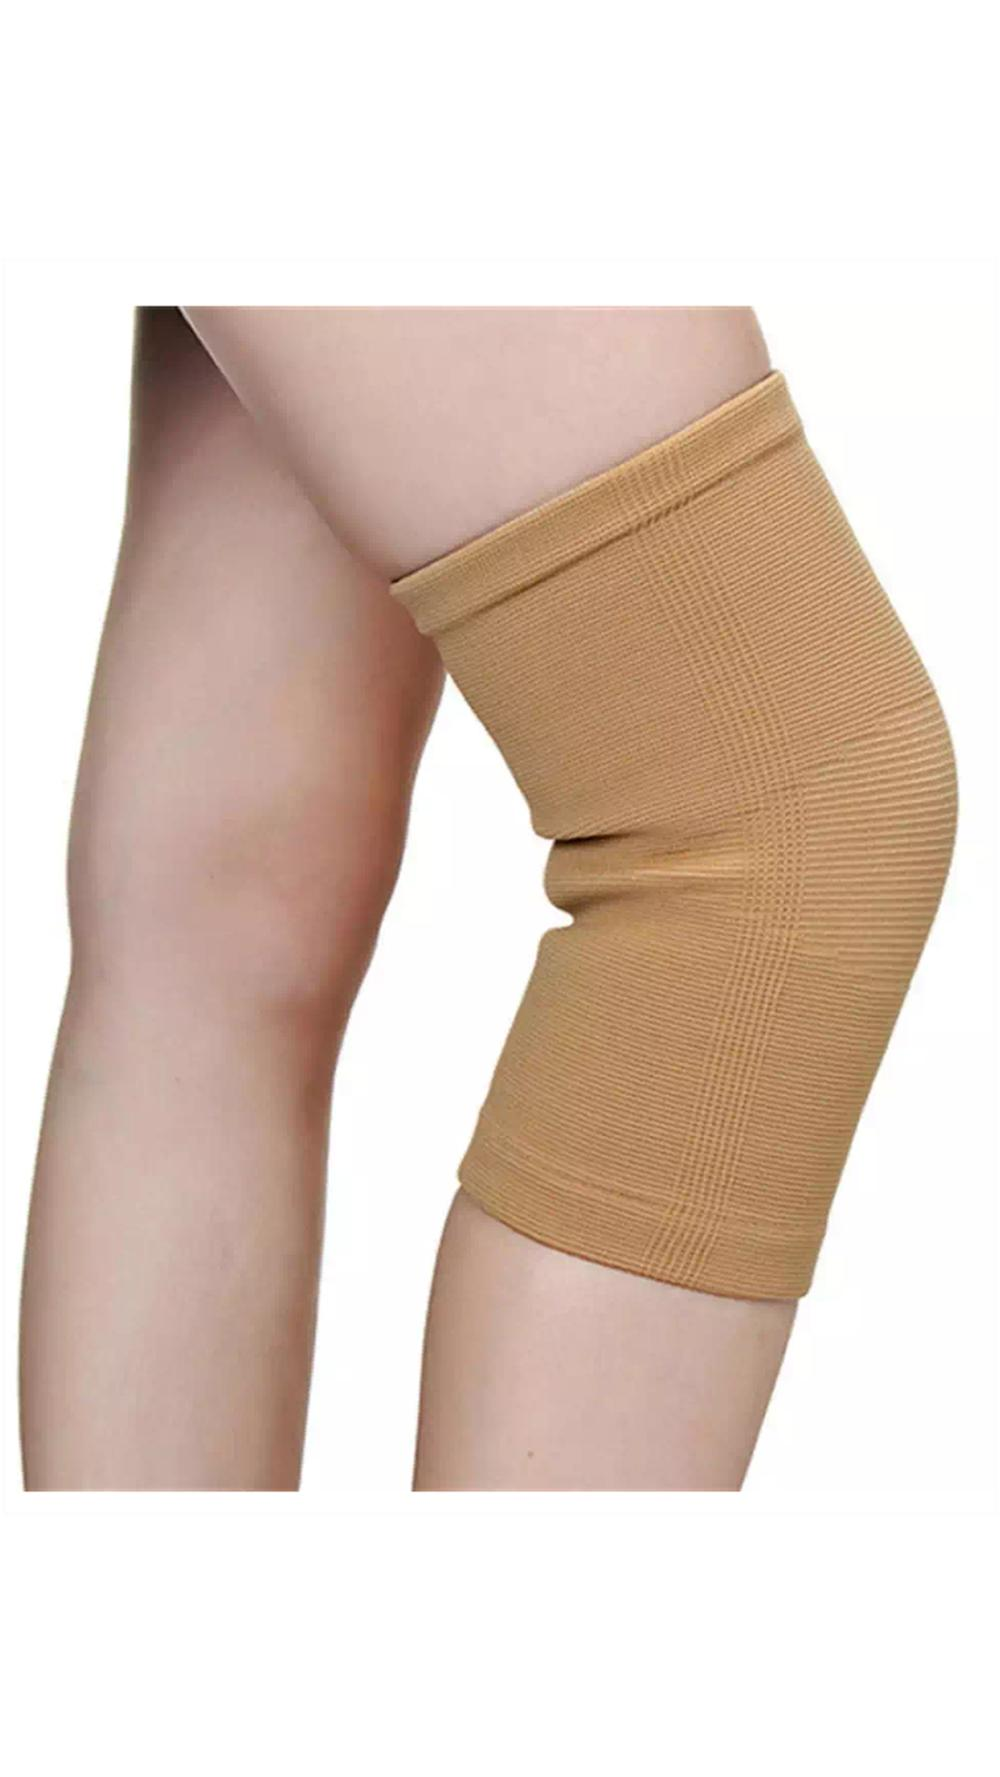 Knee Support Deker Olahraga - Deker Lutut Pelindung Lutut Radang Sendi - Deker Kesehatan Knee Anti Pegal By Health And Beauty Solution.